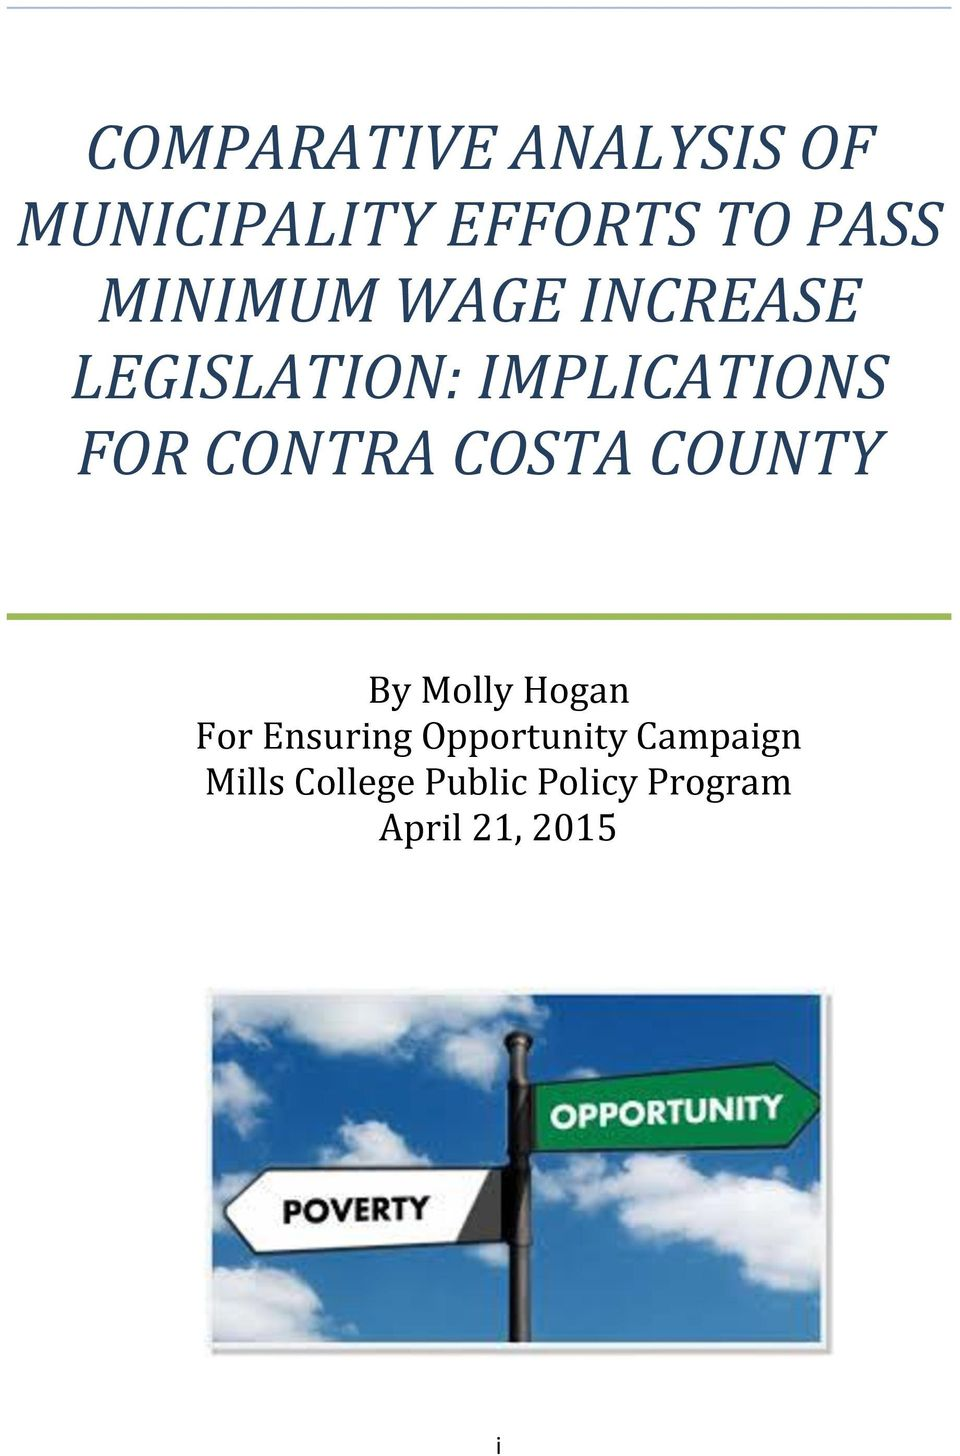 CONTRA COSTA COUNTY By Molly Hogan For Ensuring